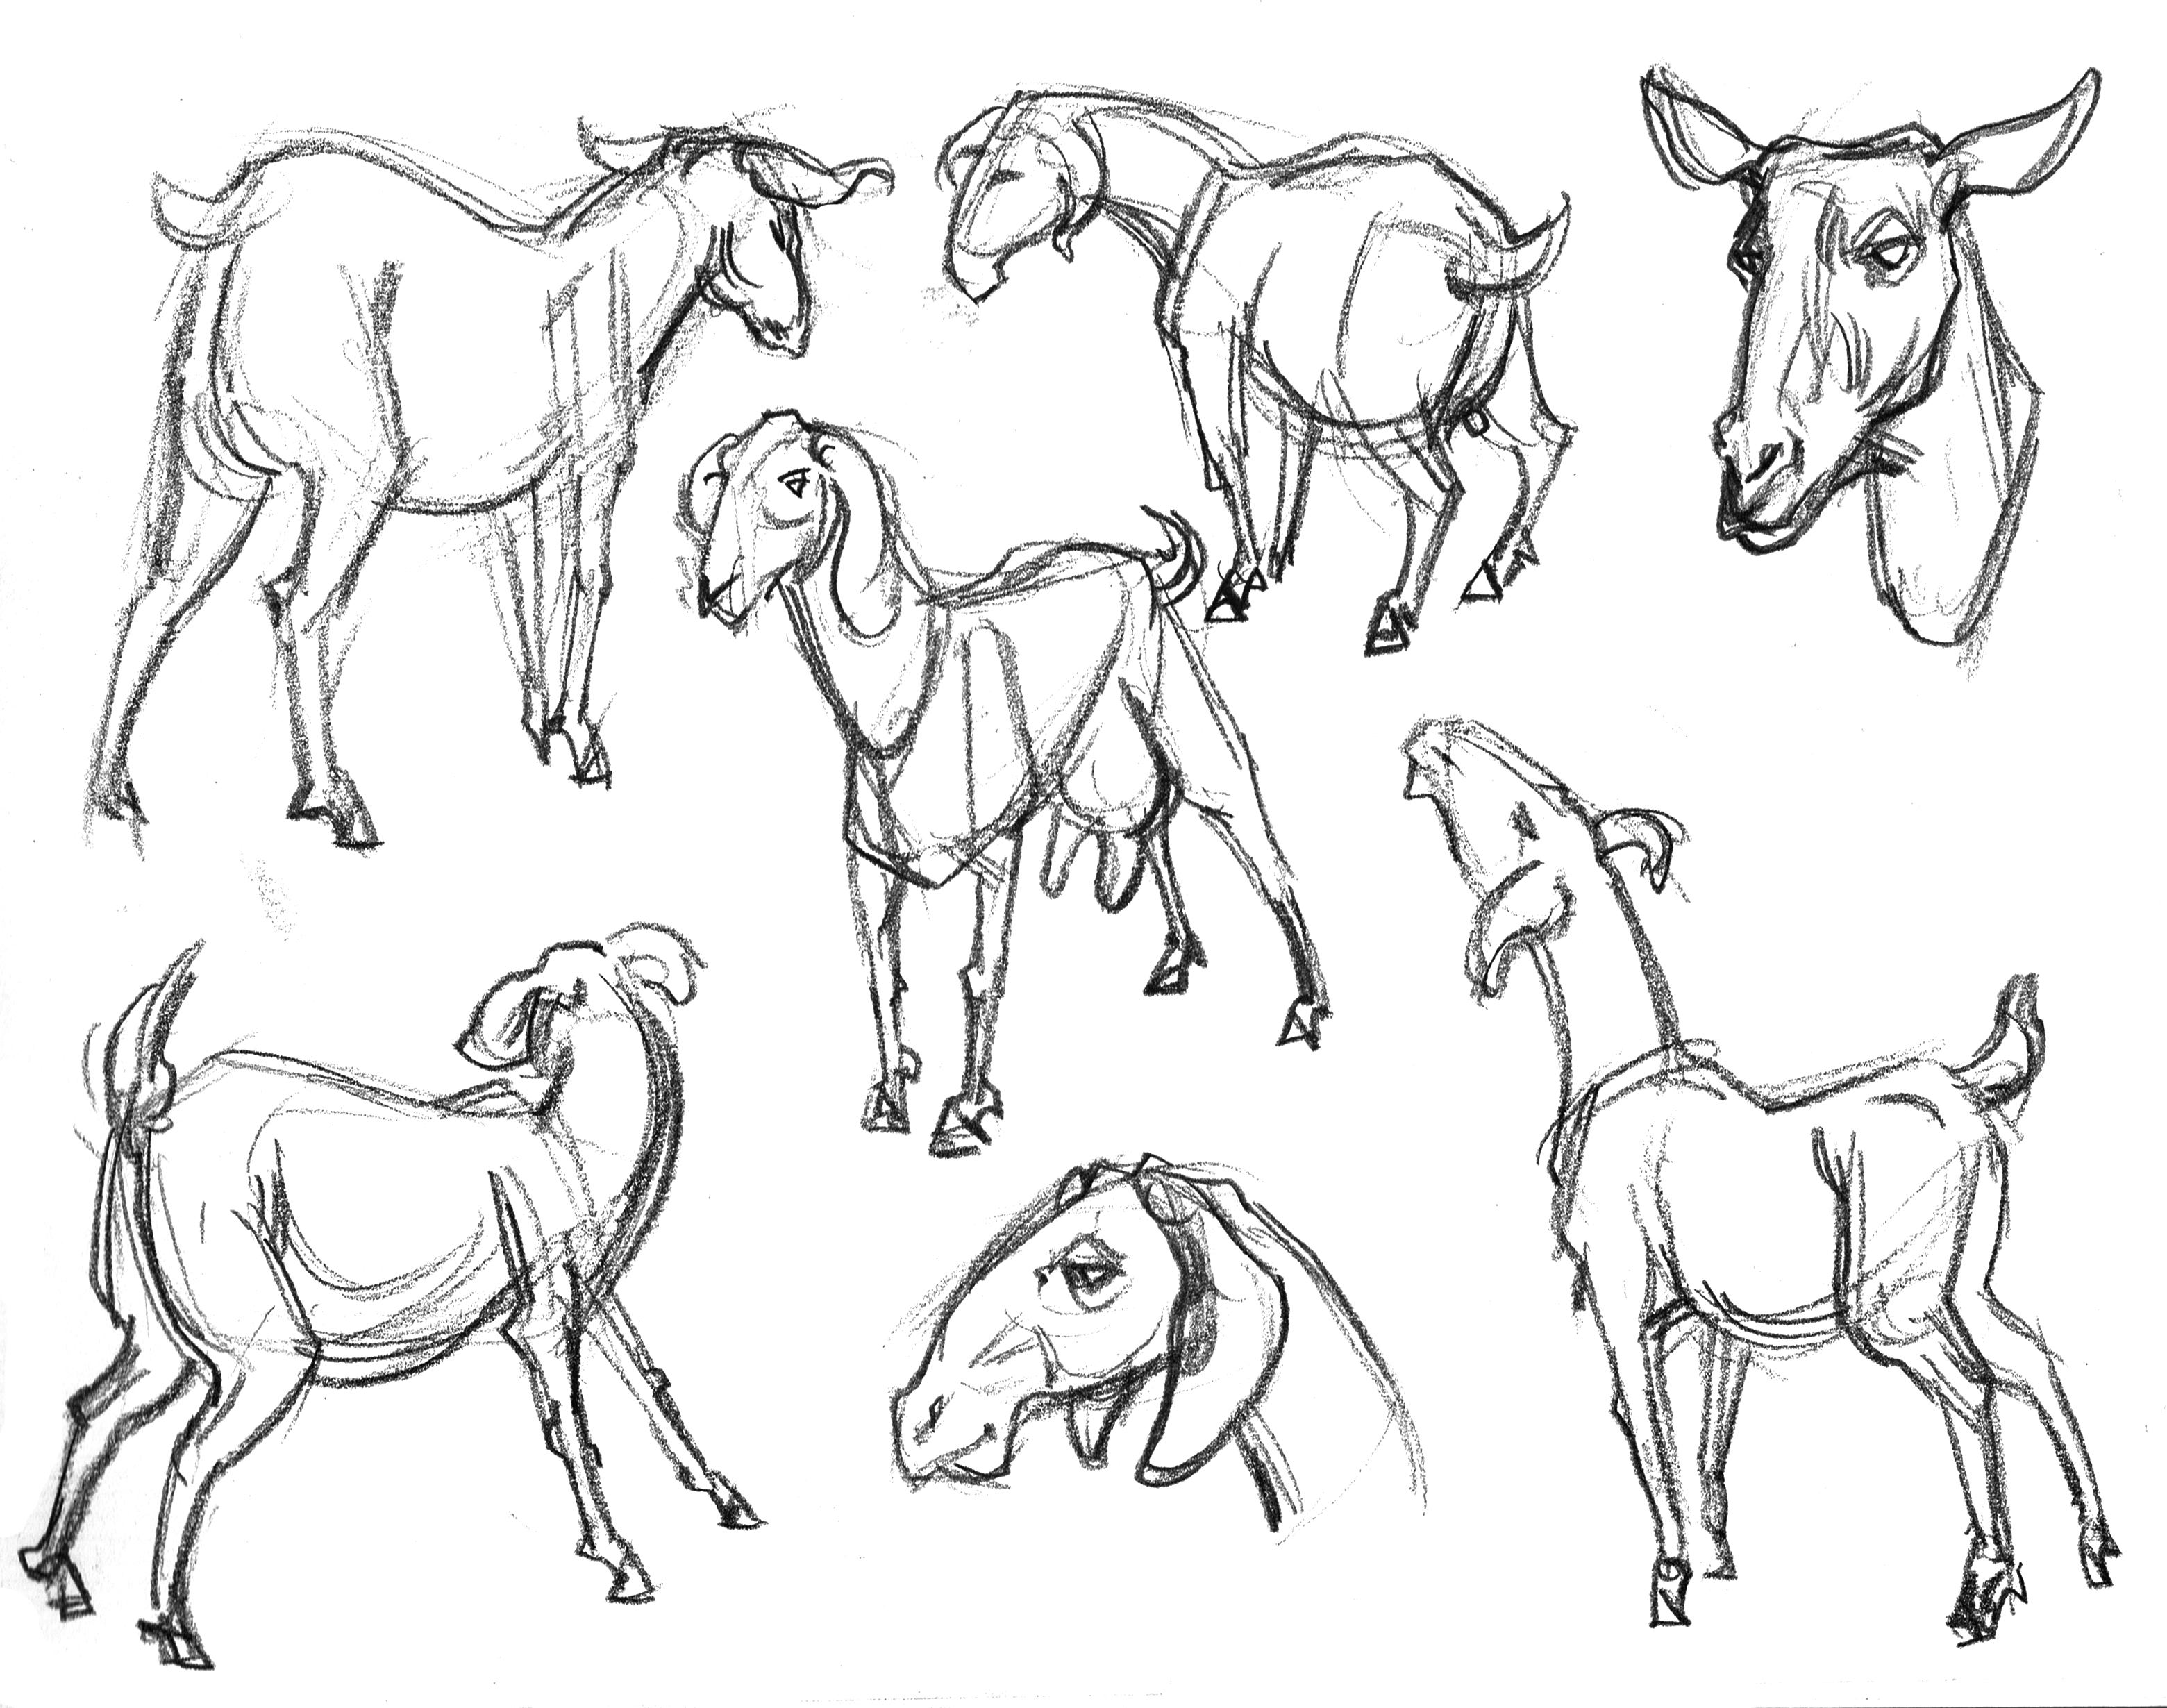 Herb Goats & Head Sketches